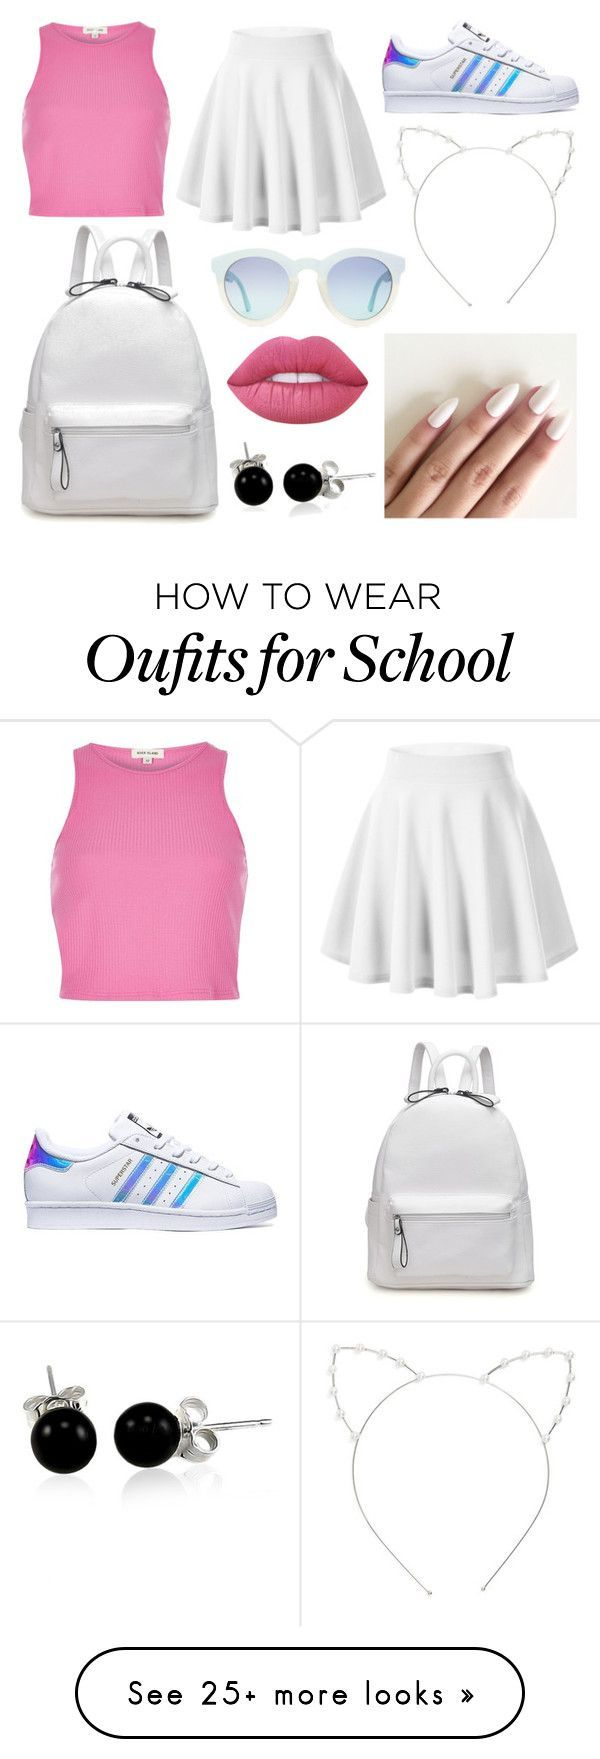 """School Day"" by susanna-trad on Polyvore featuring adidas, River Island, Cara, Lime Crime and Bling Jewelry"